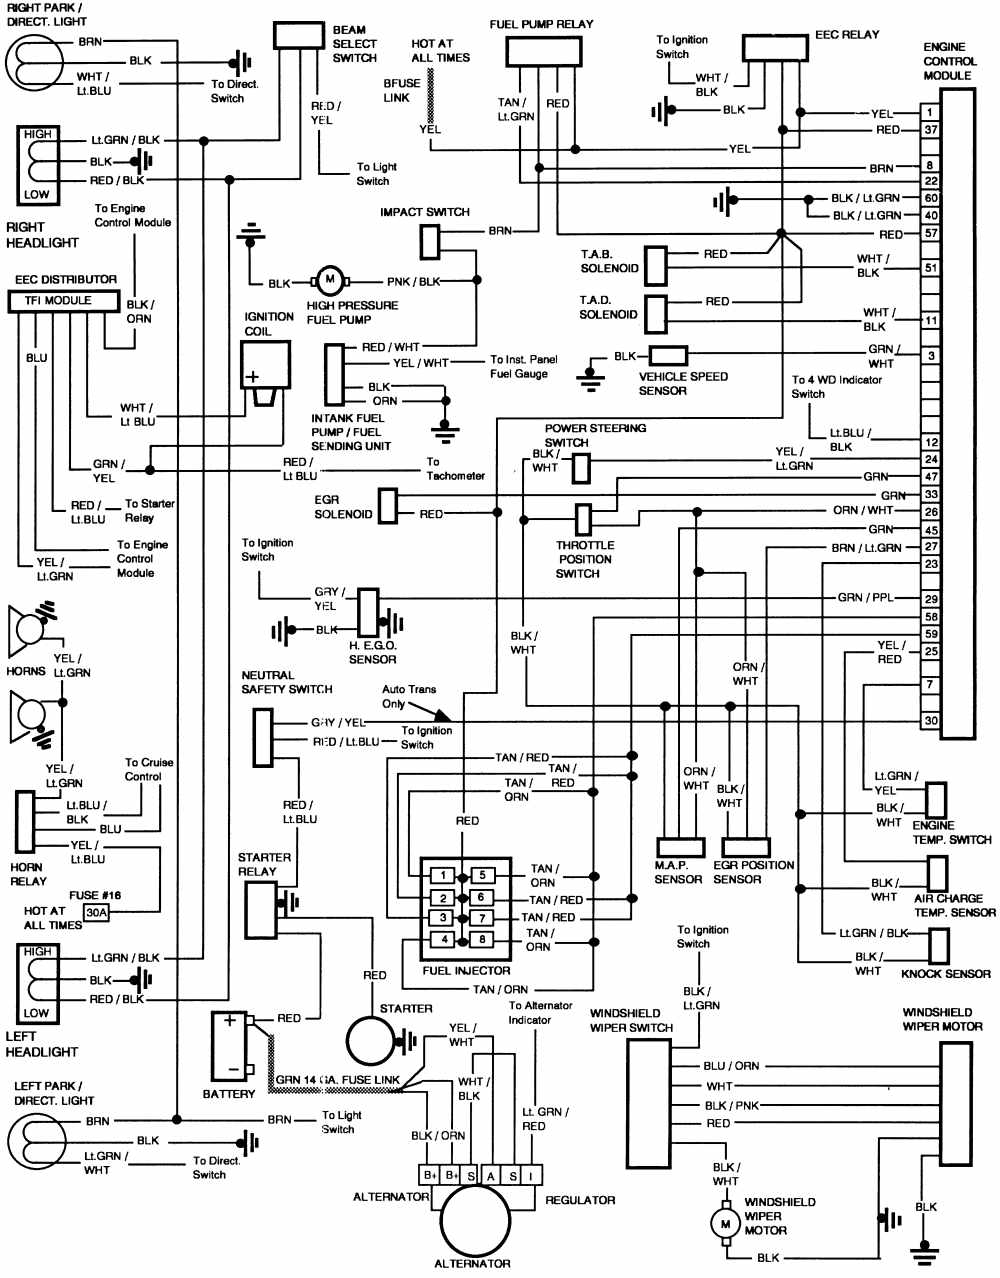 1985 ford ignition system wiring diagram pdf with Ford F 250 1986 Engine Control Module on 81094 Power Steering 97 Cummins further I Love These Types Of Diagrams moreover Century Battery Wiring Diagram as well YaBB moreover Wiring.